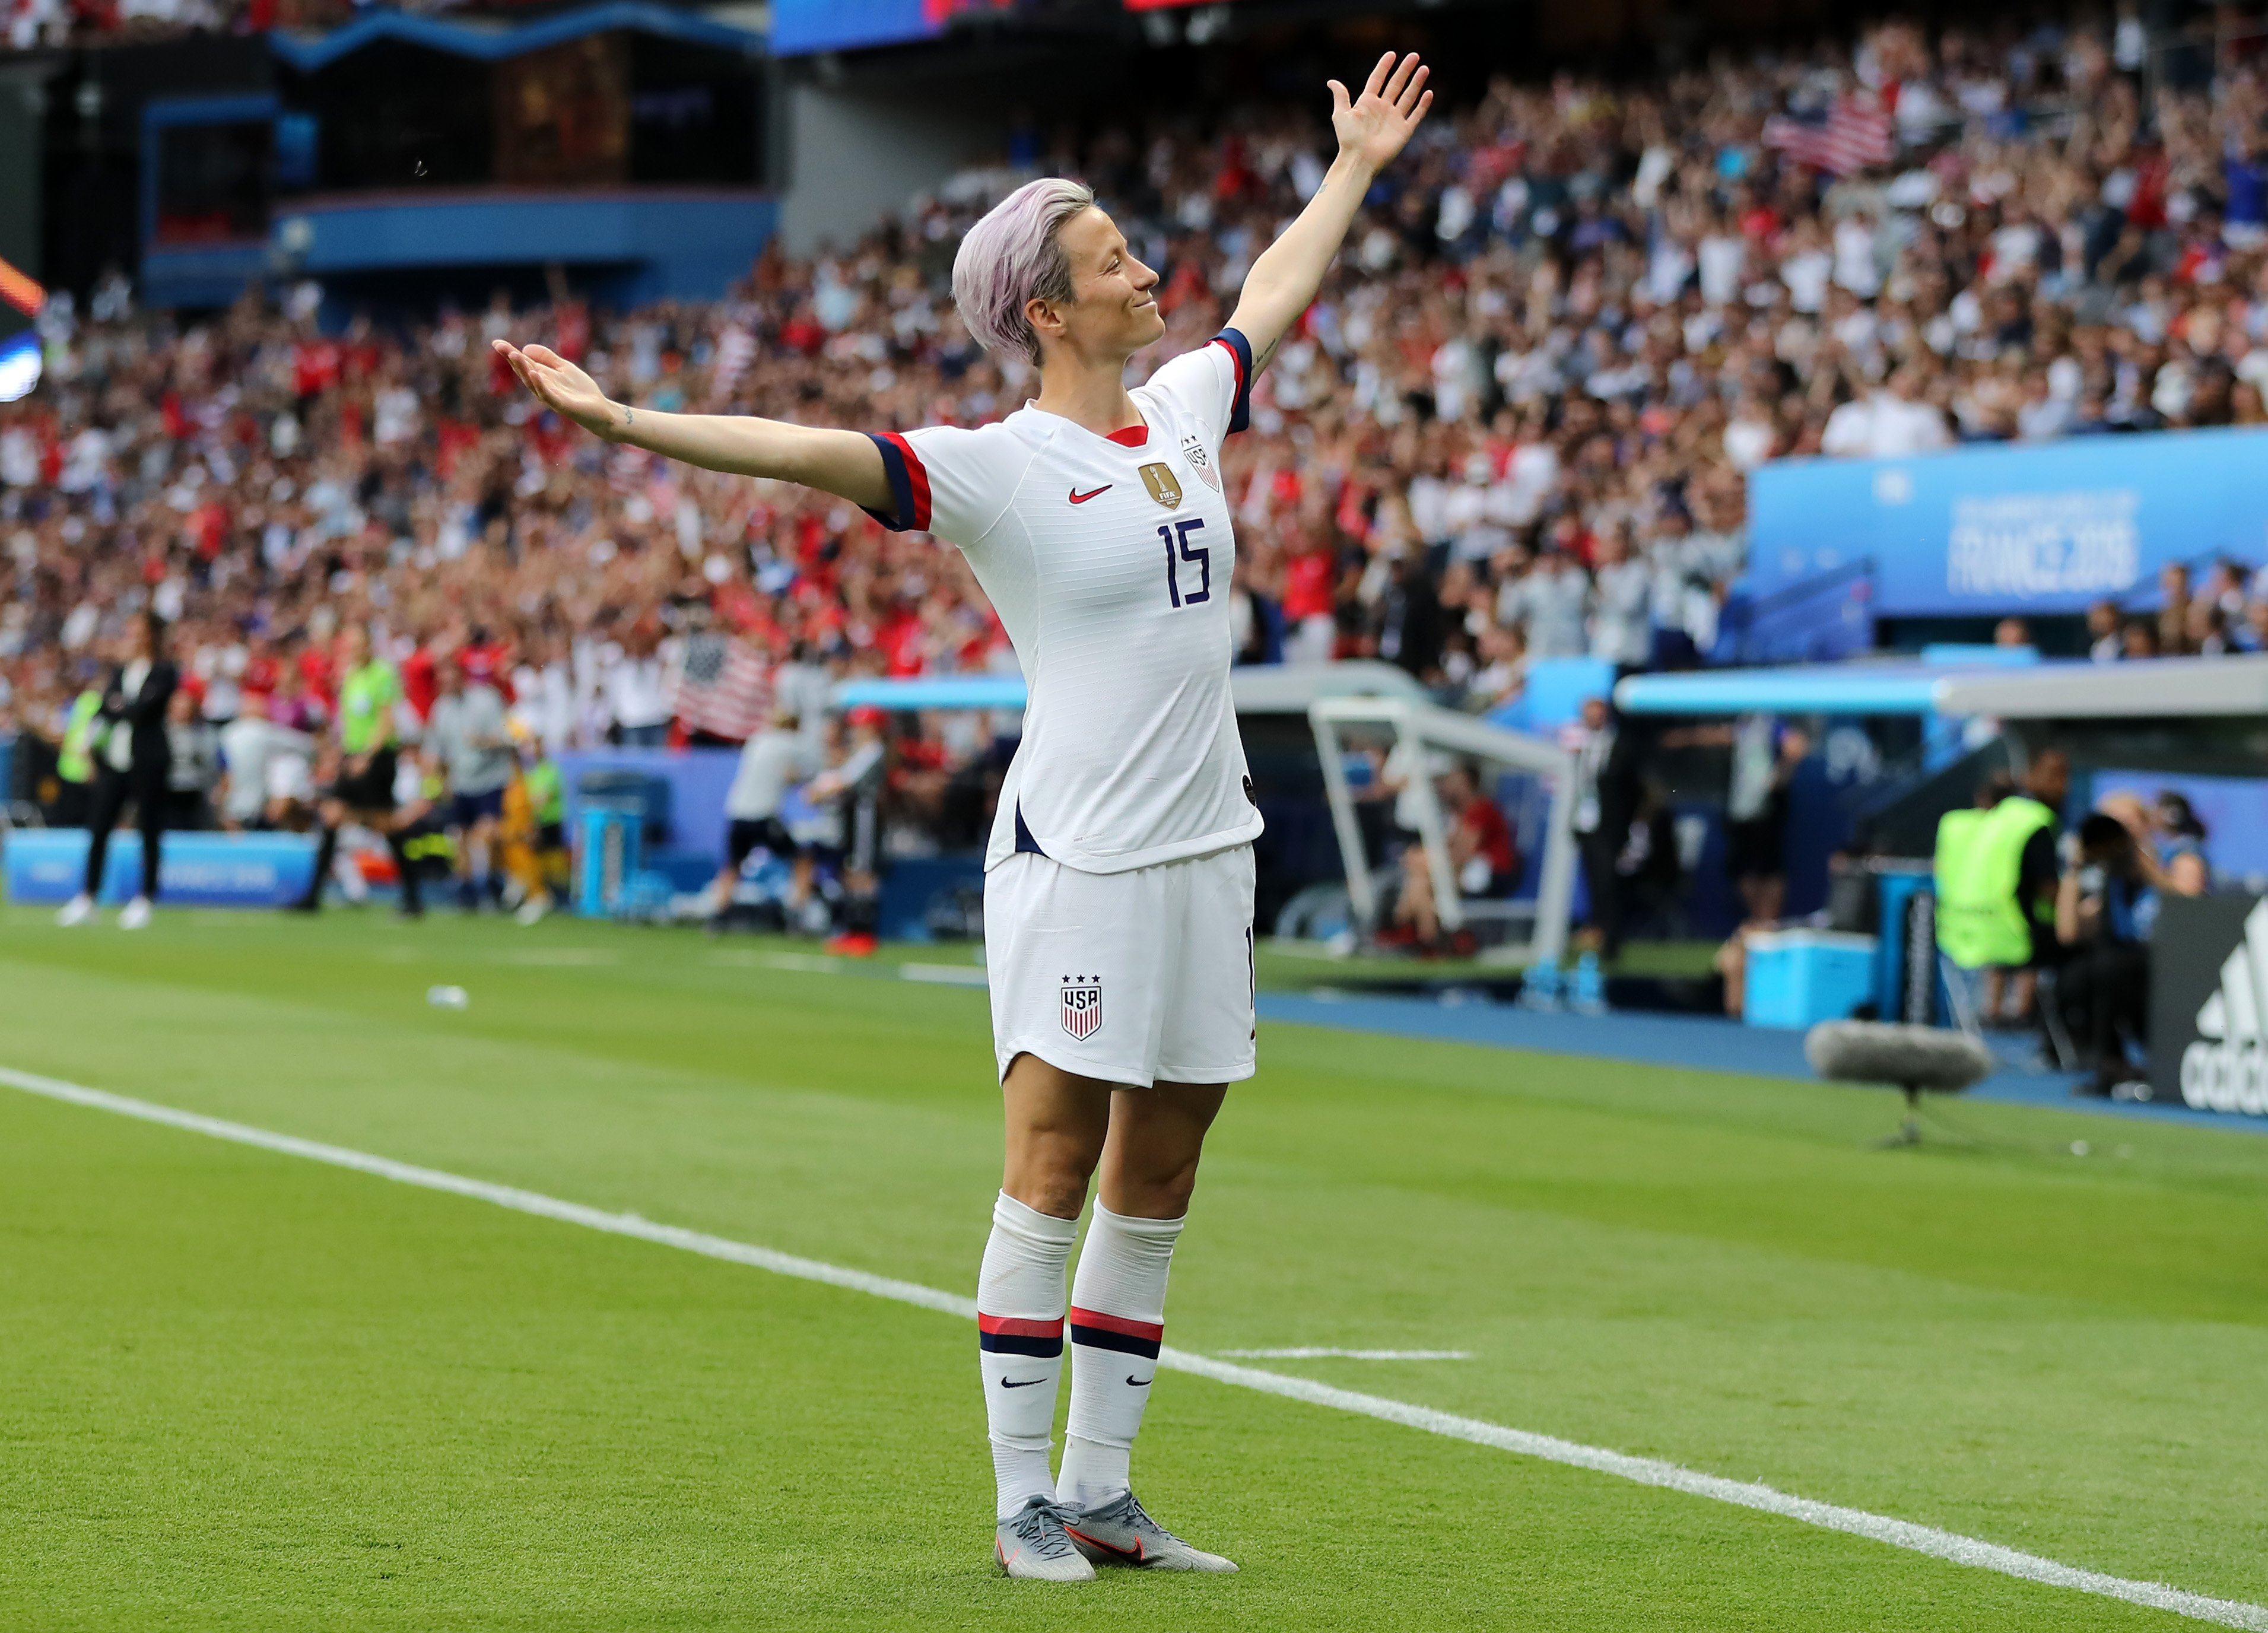 Megan Rapinoe celebrates a victory at the 2019 FIFA Women's World Cup   Photo: Getty Images